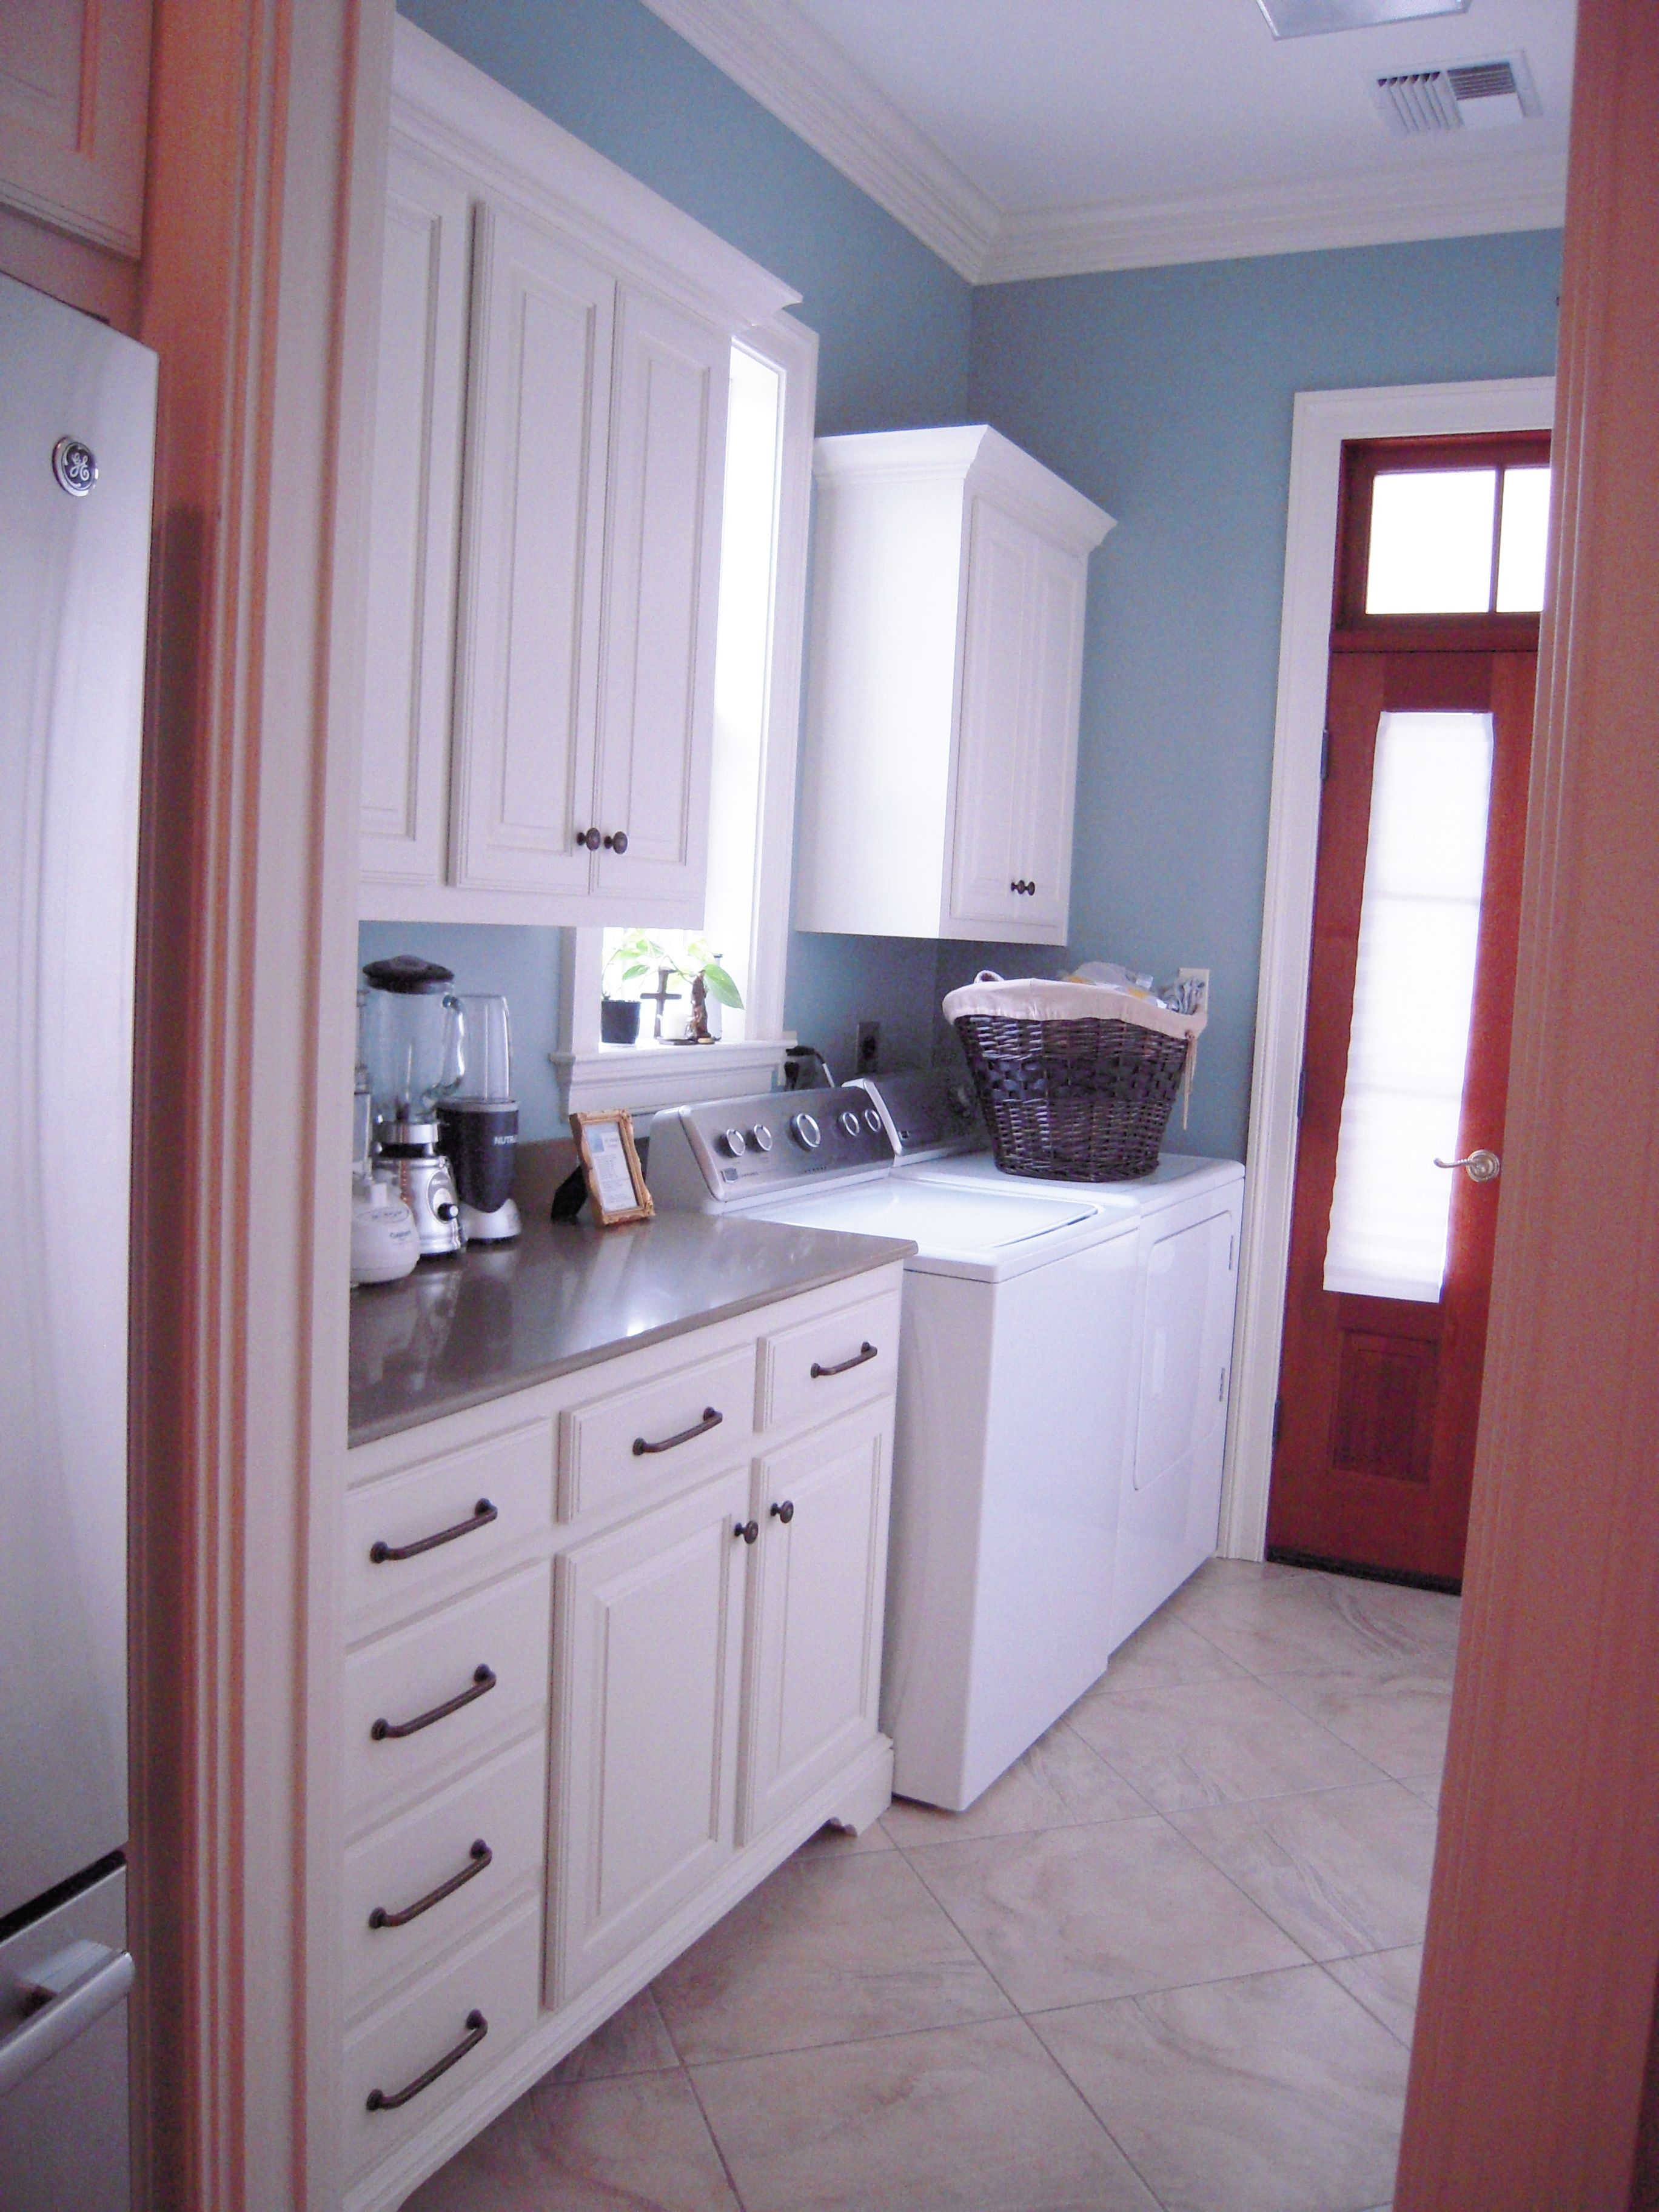 Custom Laundry Area Cabinets By Wooden Specialties Cabinet Custom Cabinets Cabinetry